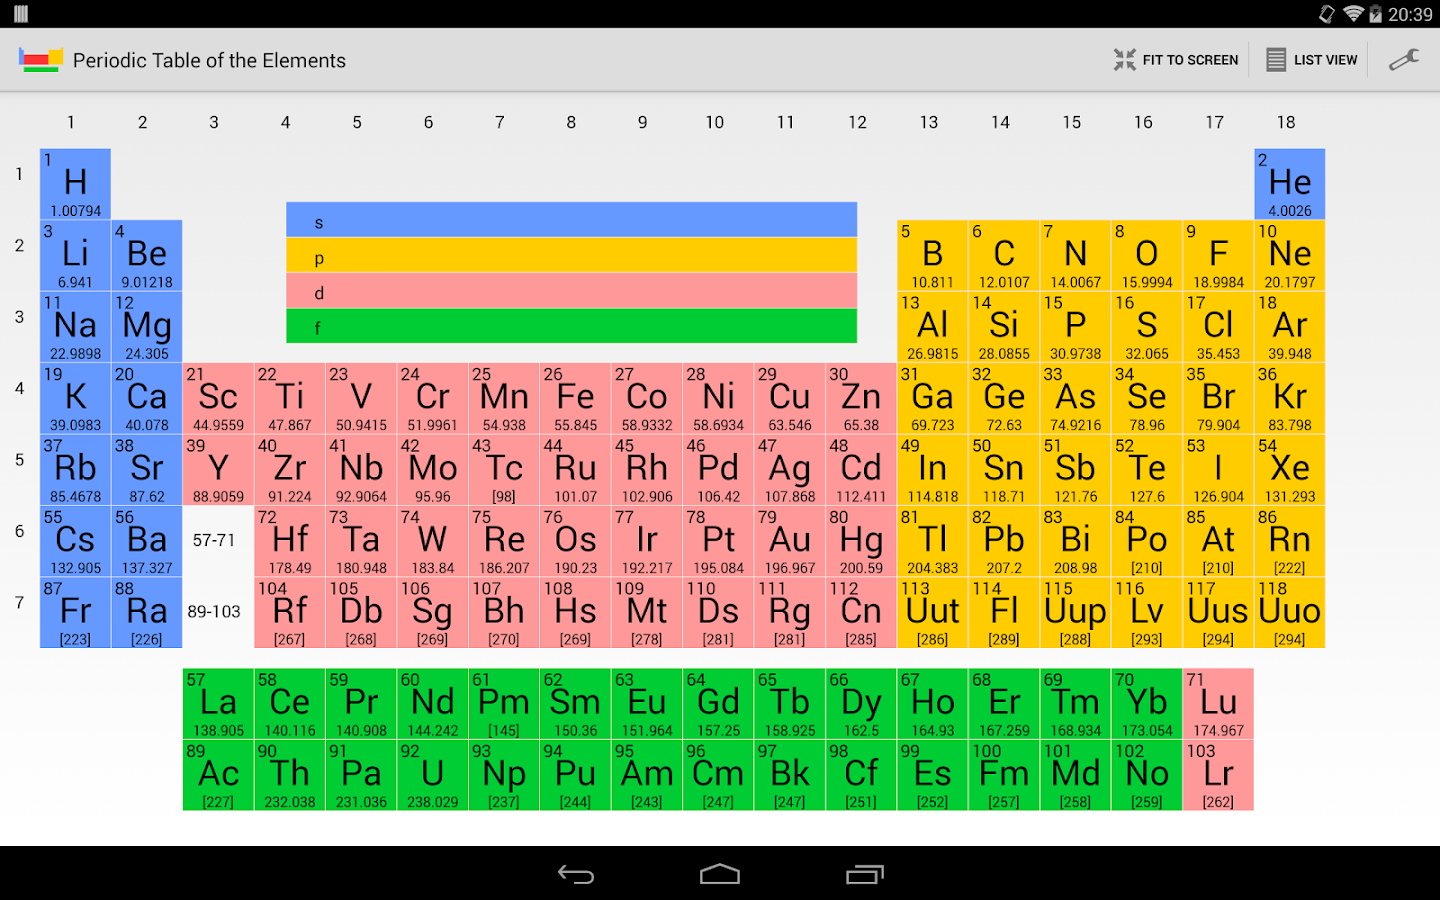 Periodic table song in hindi images periodic table images periodic table song in hindi image collections periodic table images periodic table song in hindi images gamestrikefo Choice Image